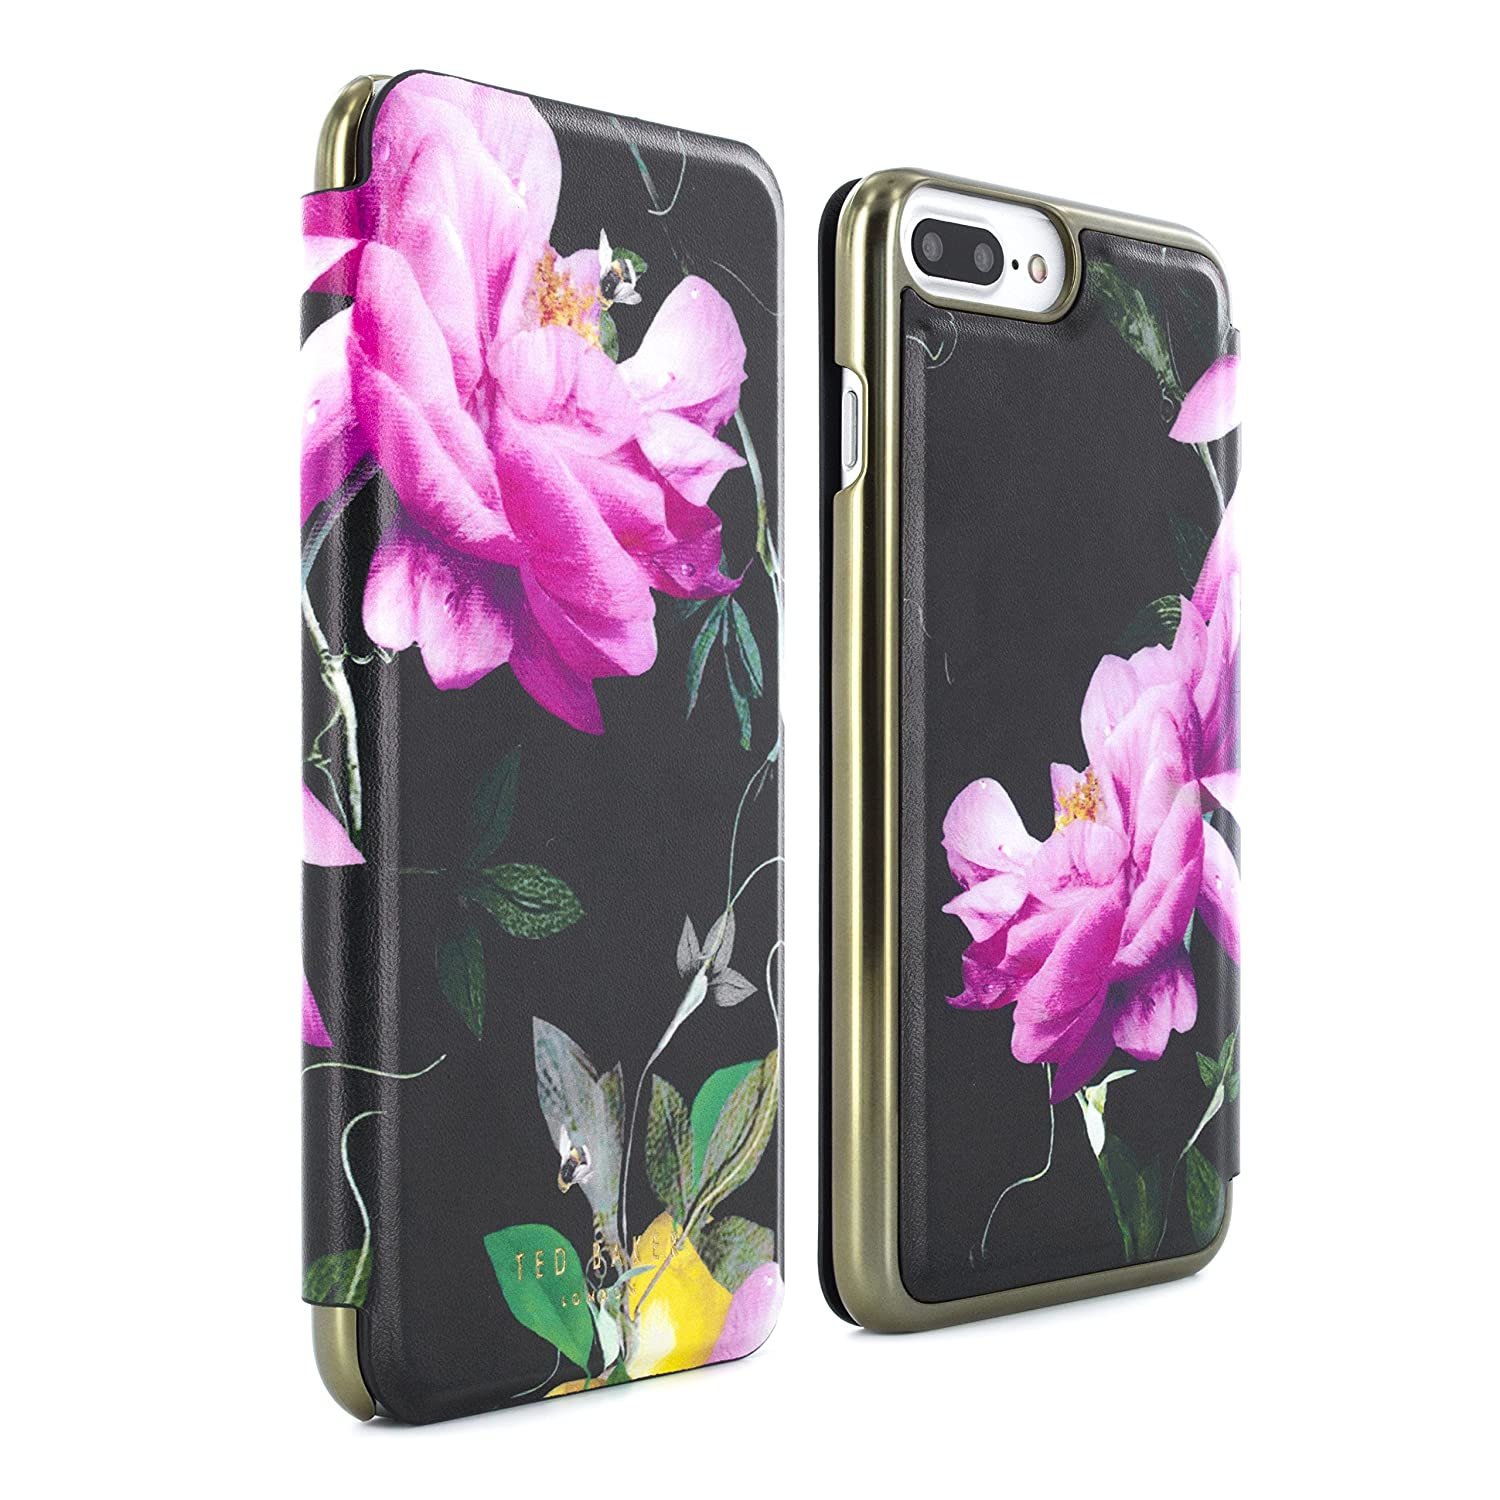 ted baker iphone 7 plus case